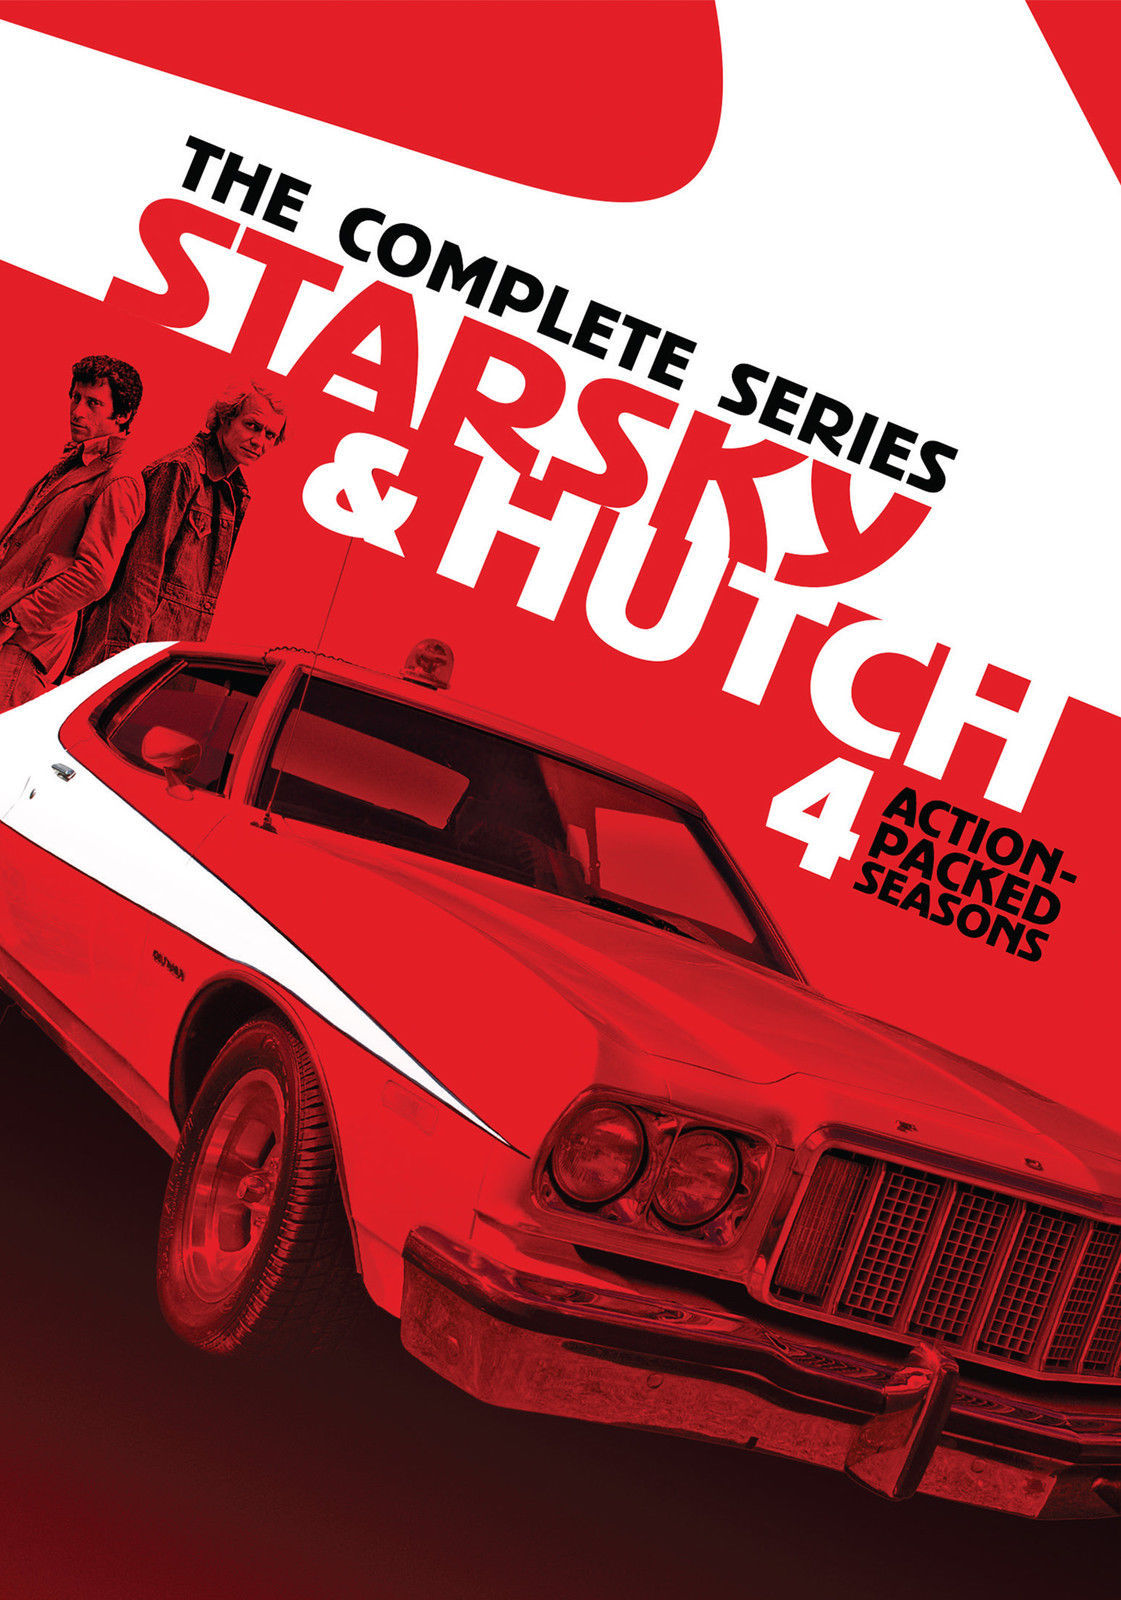 Starsky & Hutch: The Complete Series (DVD Set) Classic TV Series New